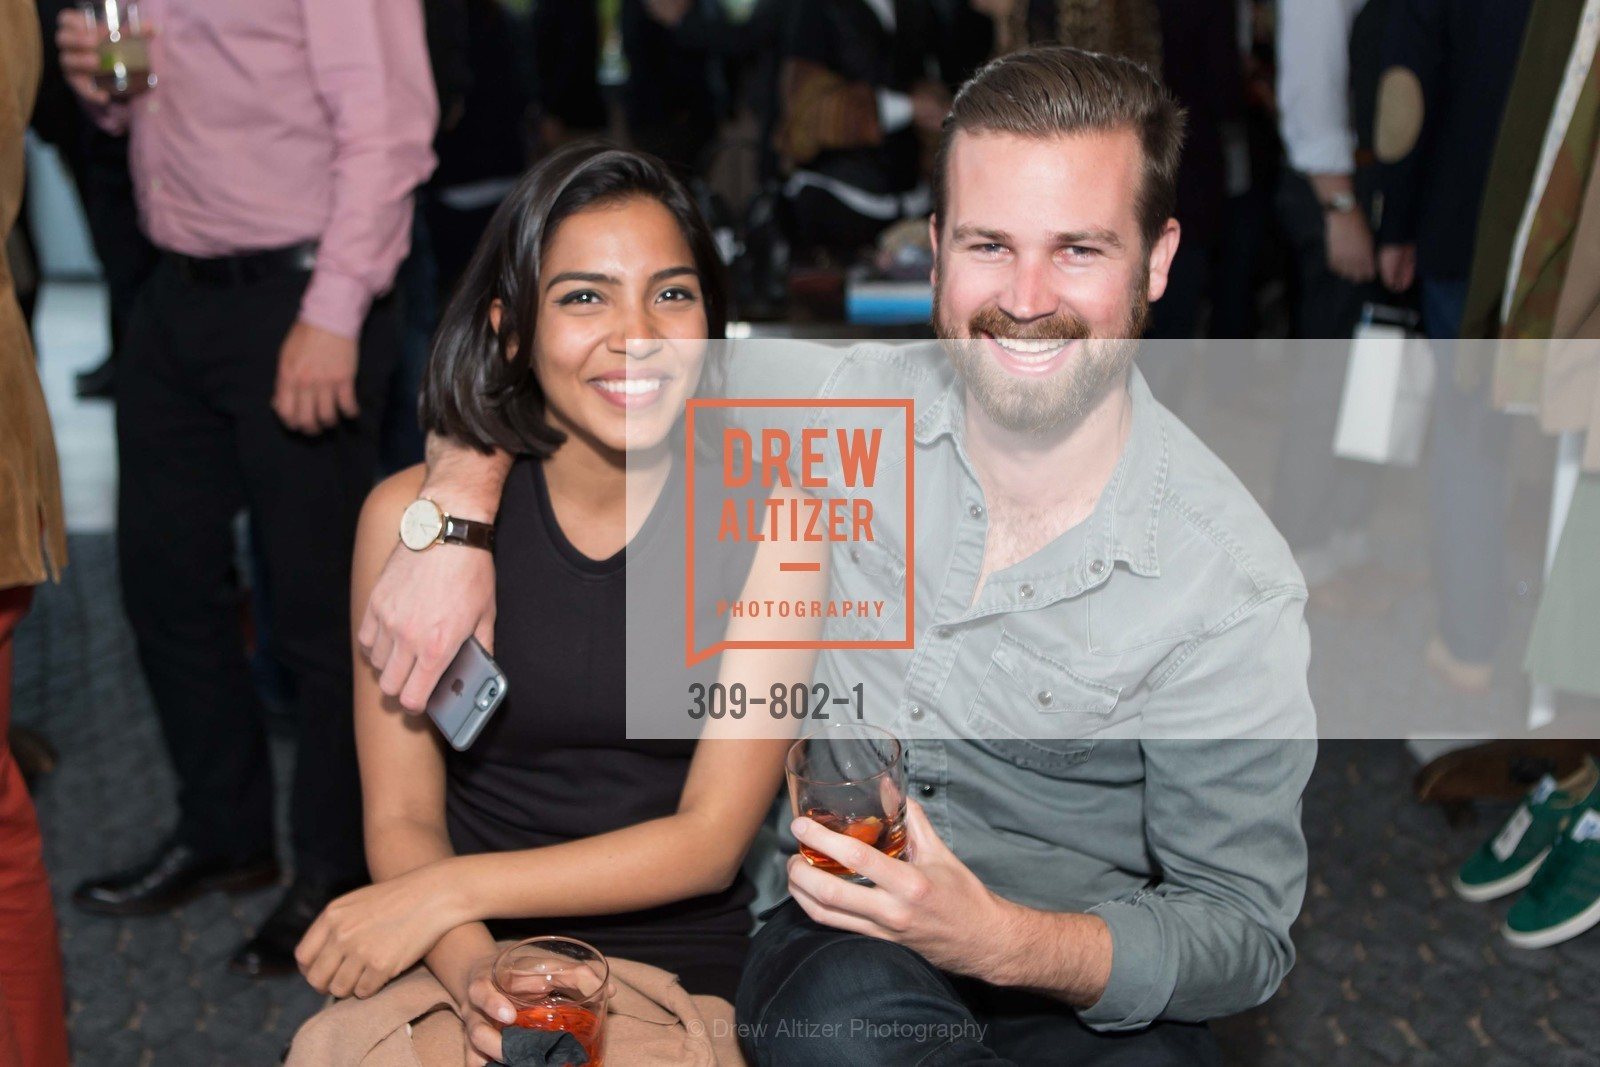 Zara Rahim, Jeremy Lermitte, MR PORTER Celebrate The San Francisco Issue of The Journal, US, April 23rd, 2015,Drew Altizer, Drew Altizer Photography, full-service agency, private events, San Francisco photographer, photographer california